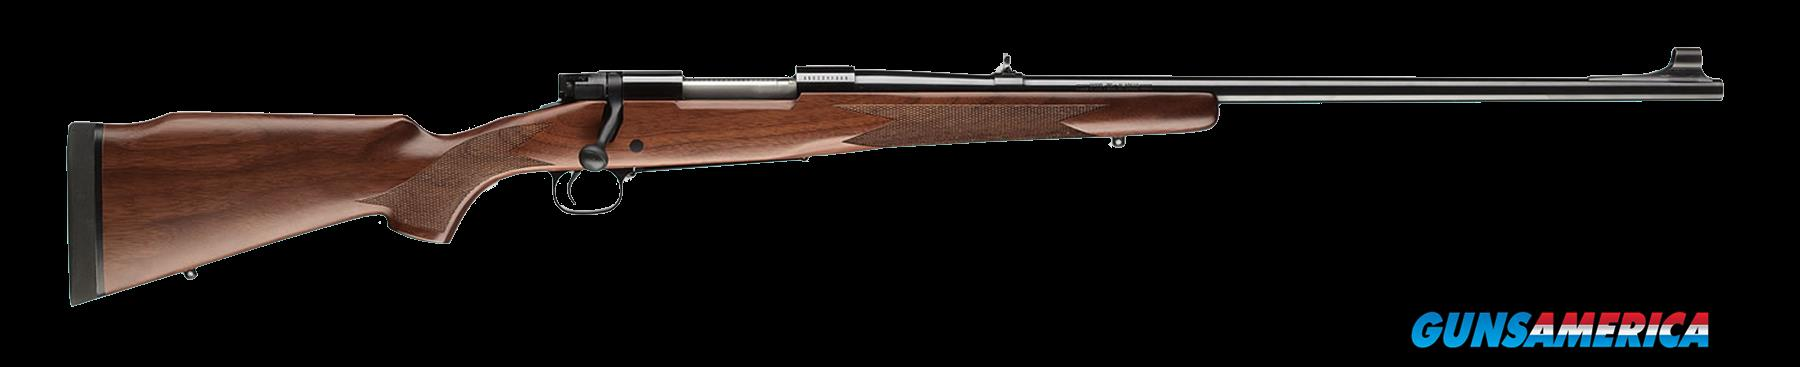 "Winchester Guns 535205136 70 Alaskan Bolt 338 Win Mag 25"" 3+1 Walnut Stk Blued  Guns > Rifles > W Misc Rifles"